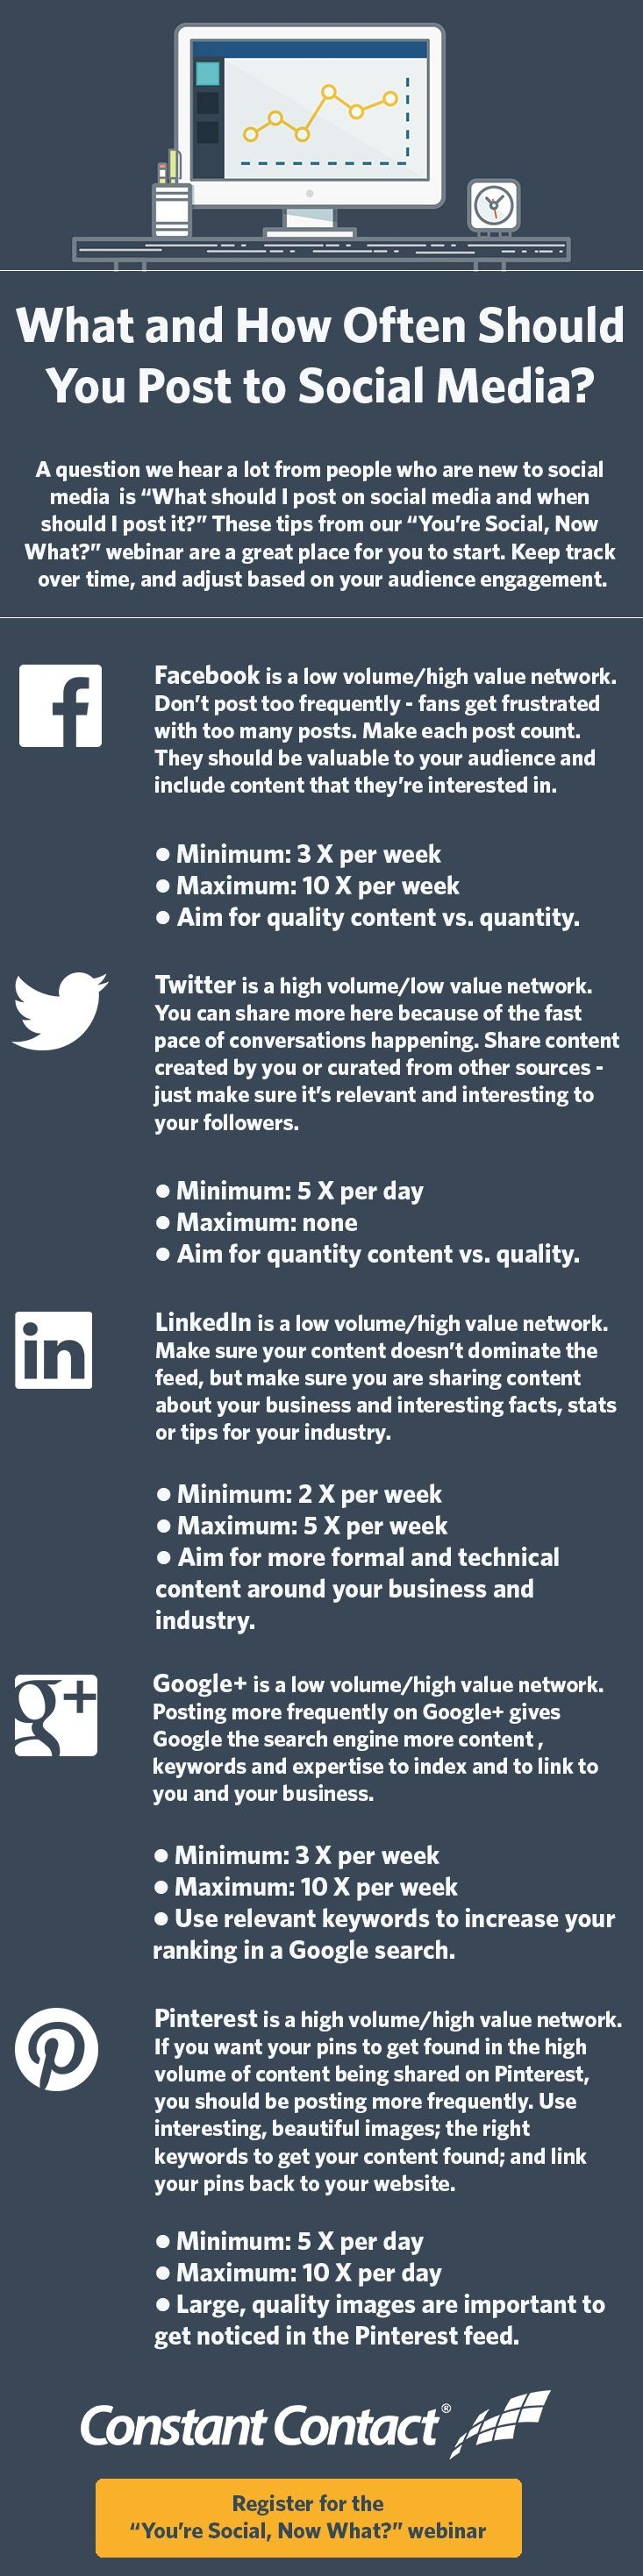 How Often Should You Post to Facebook, Twitter, Pinterest, Google+ — Social Media #infographic